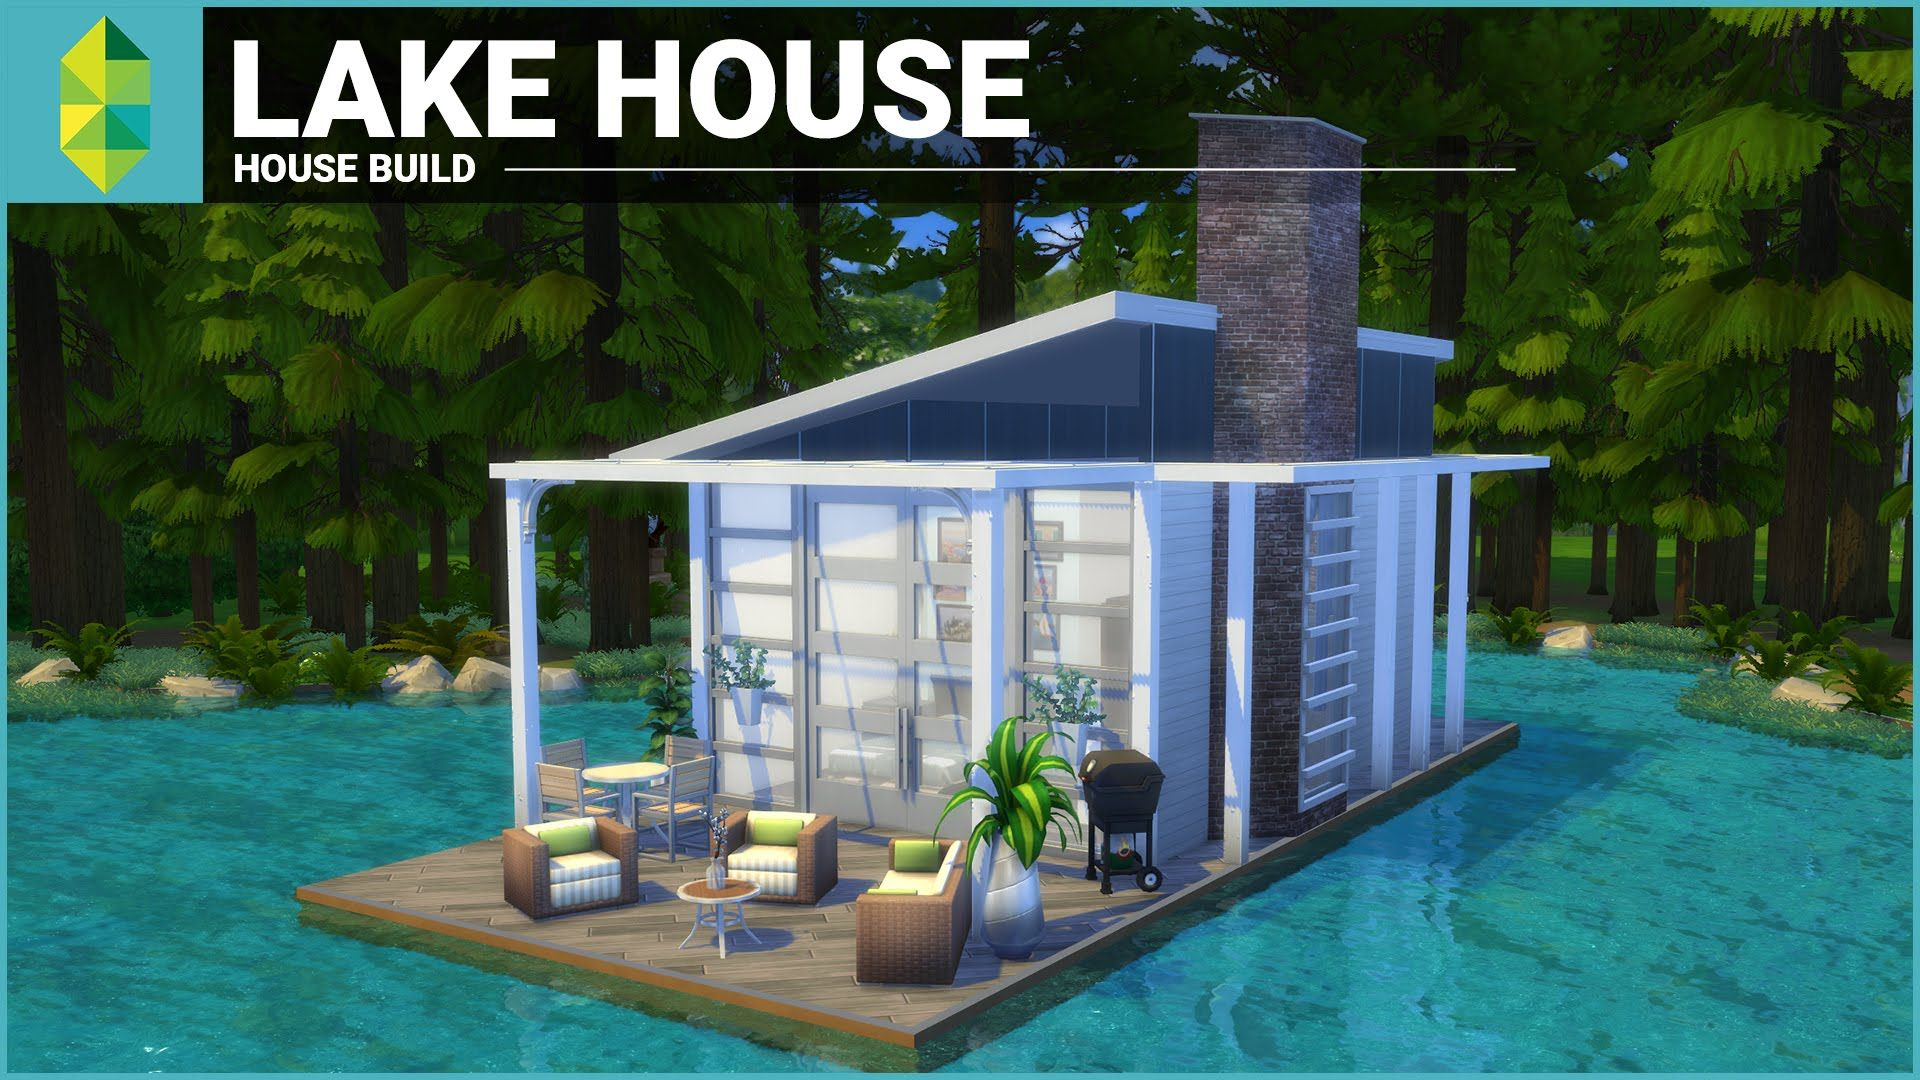 Home Bild The Sims 4 House Building Lake House Tiny 4x6 Grid